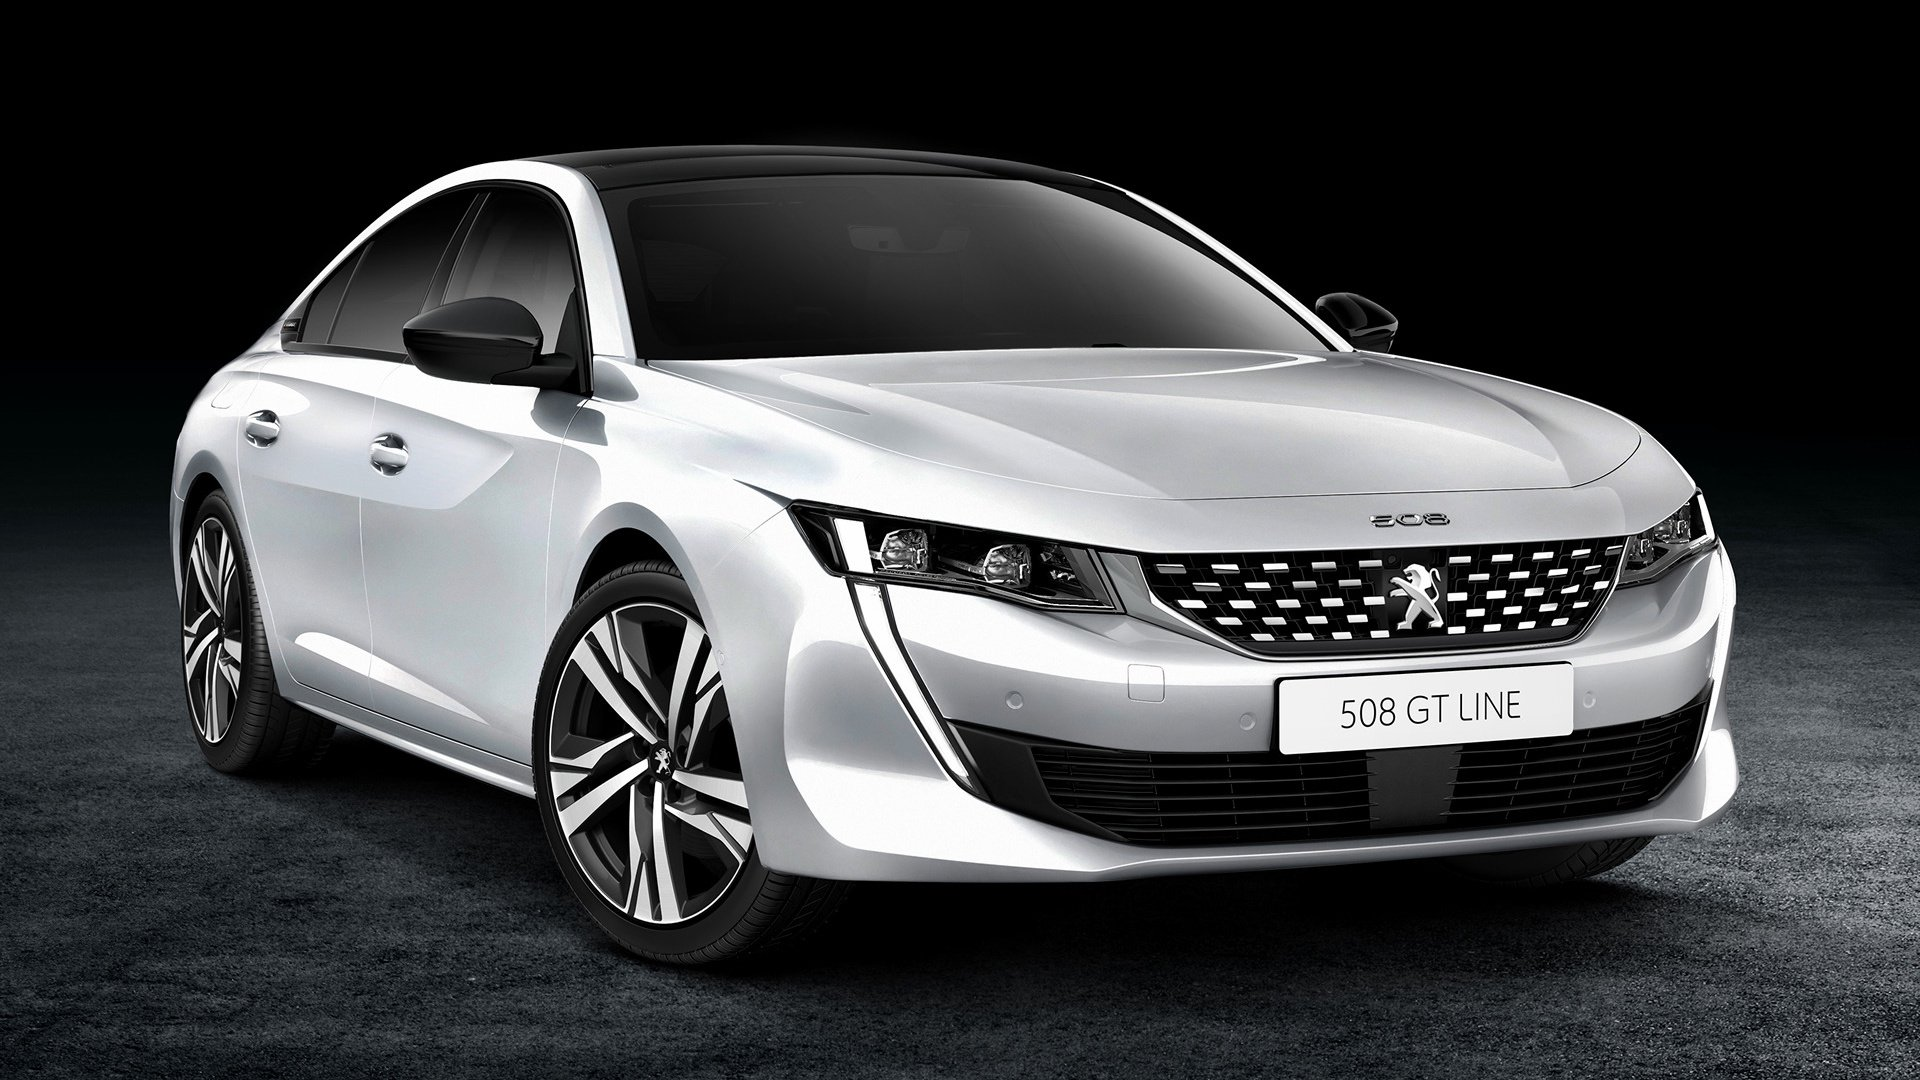 2018 Peugeot 508 GT Line   Wallpapers and HD Images Car Pixel 1920x1080